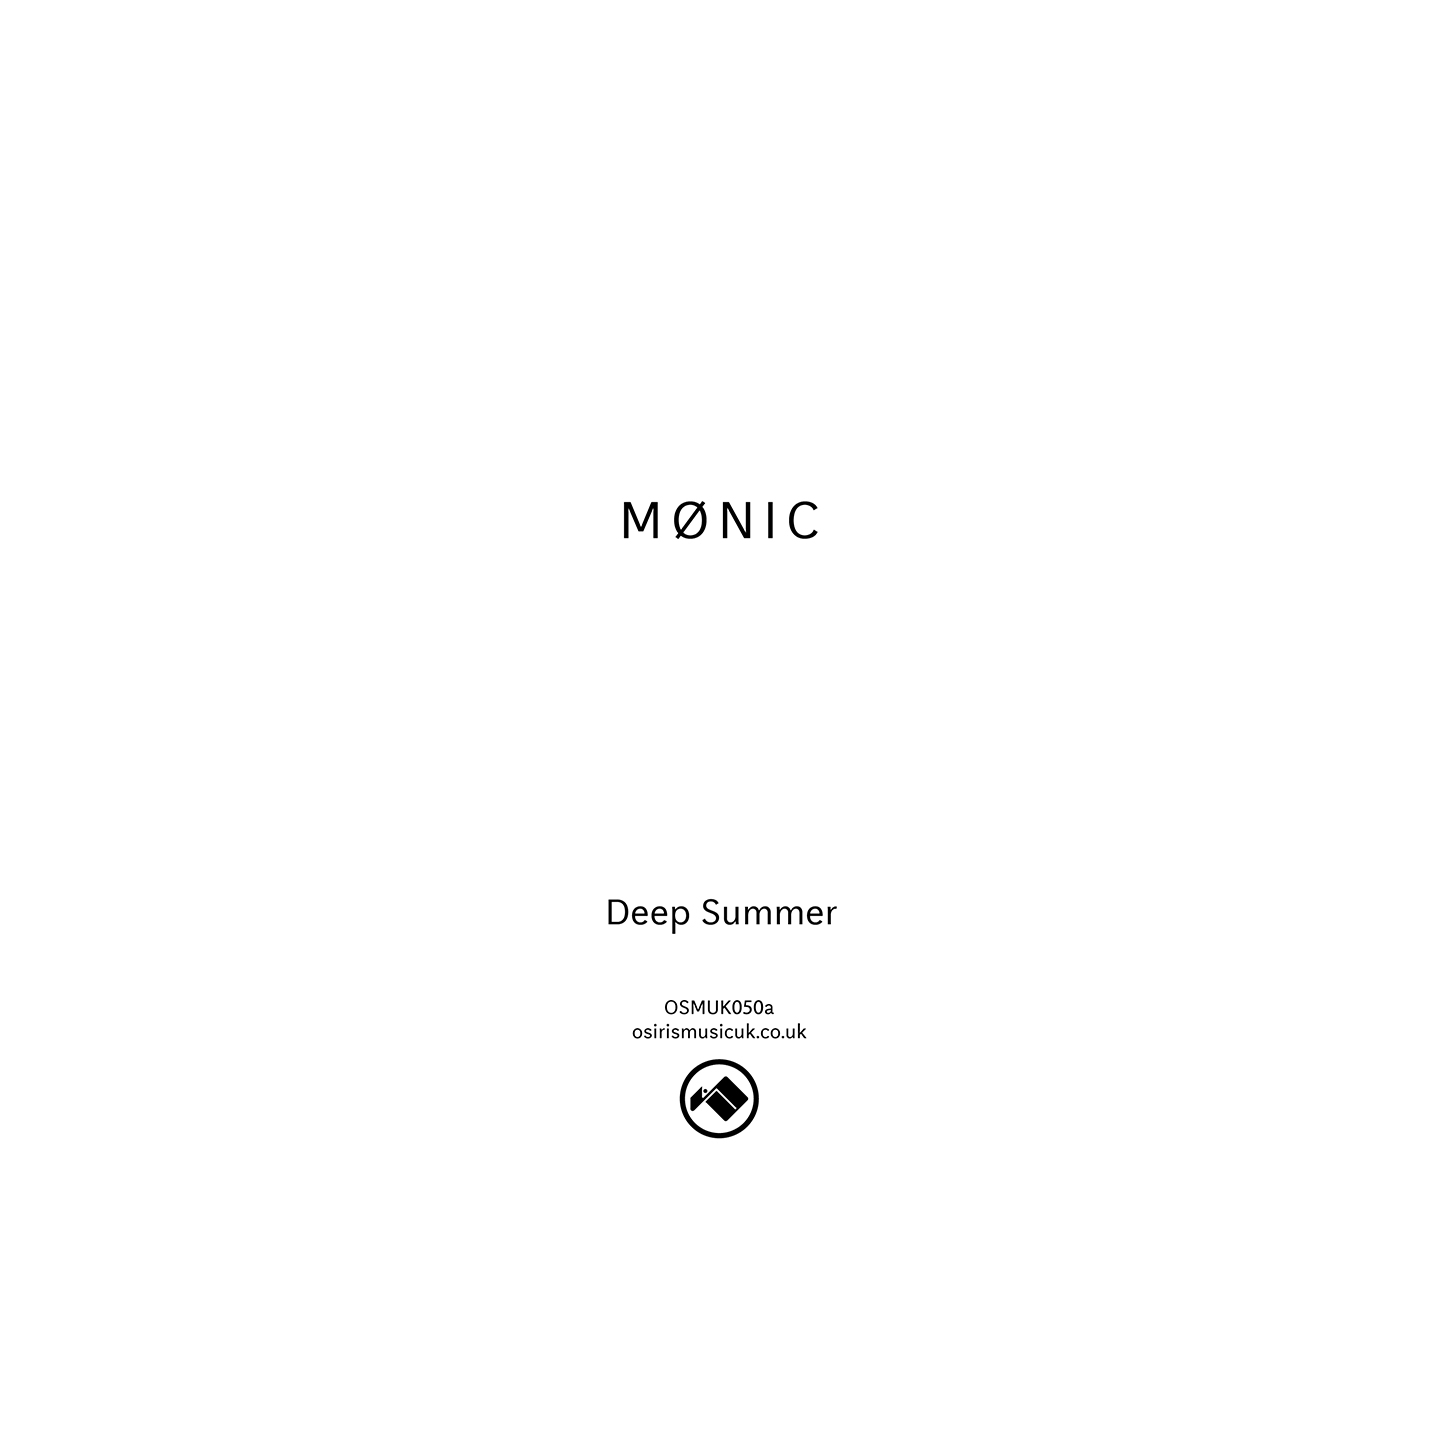 Mønic - Deep Summer / Regret Was Never So Sure